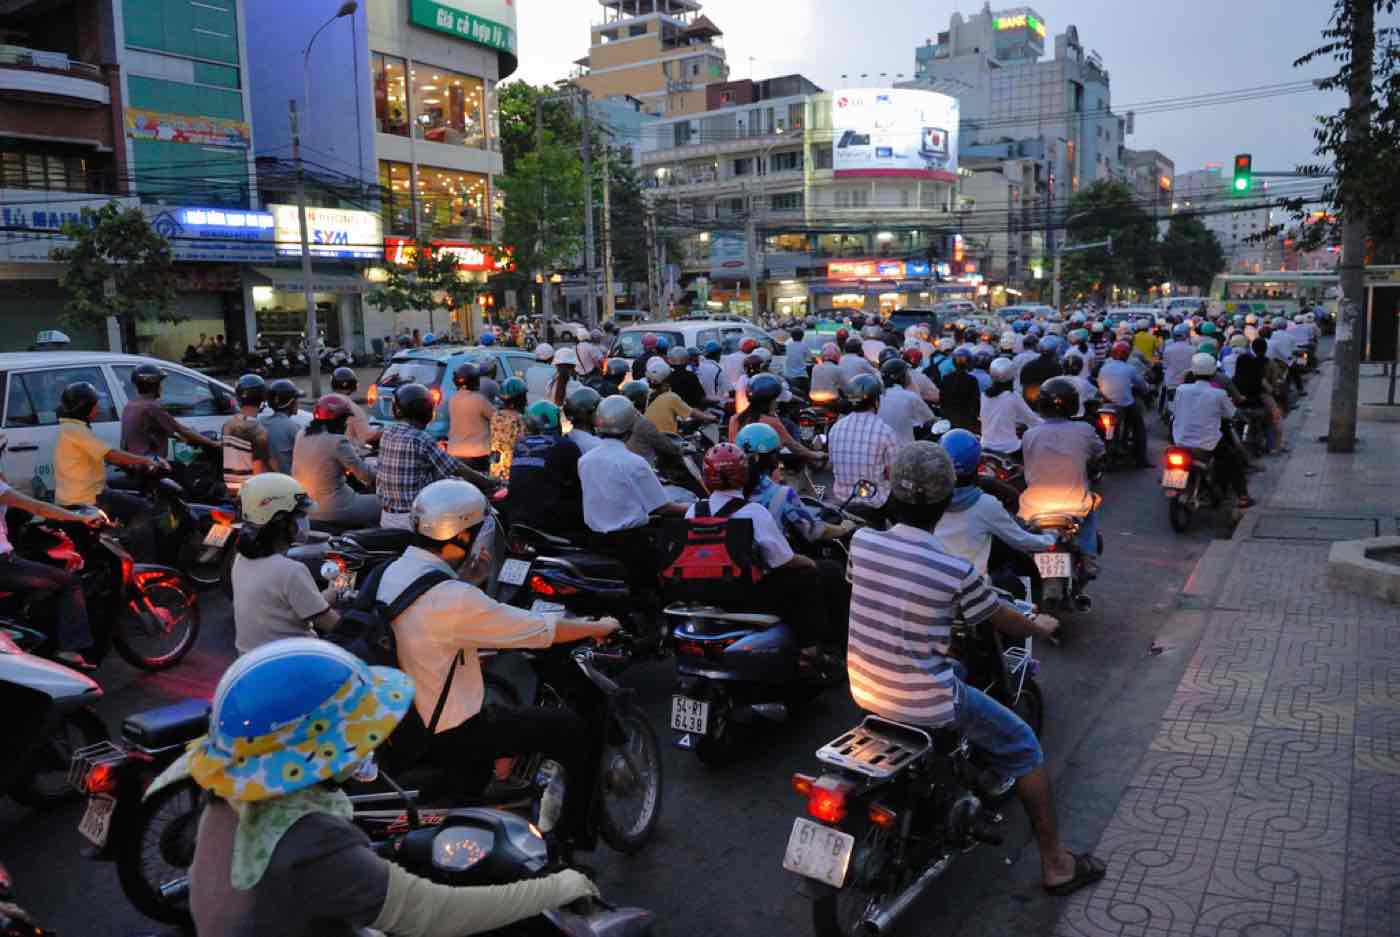 traffic vietnam tips motorcycles bikes .jpg